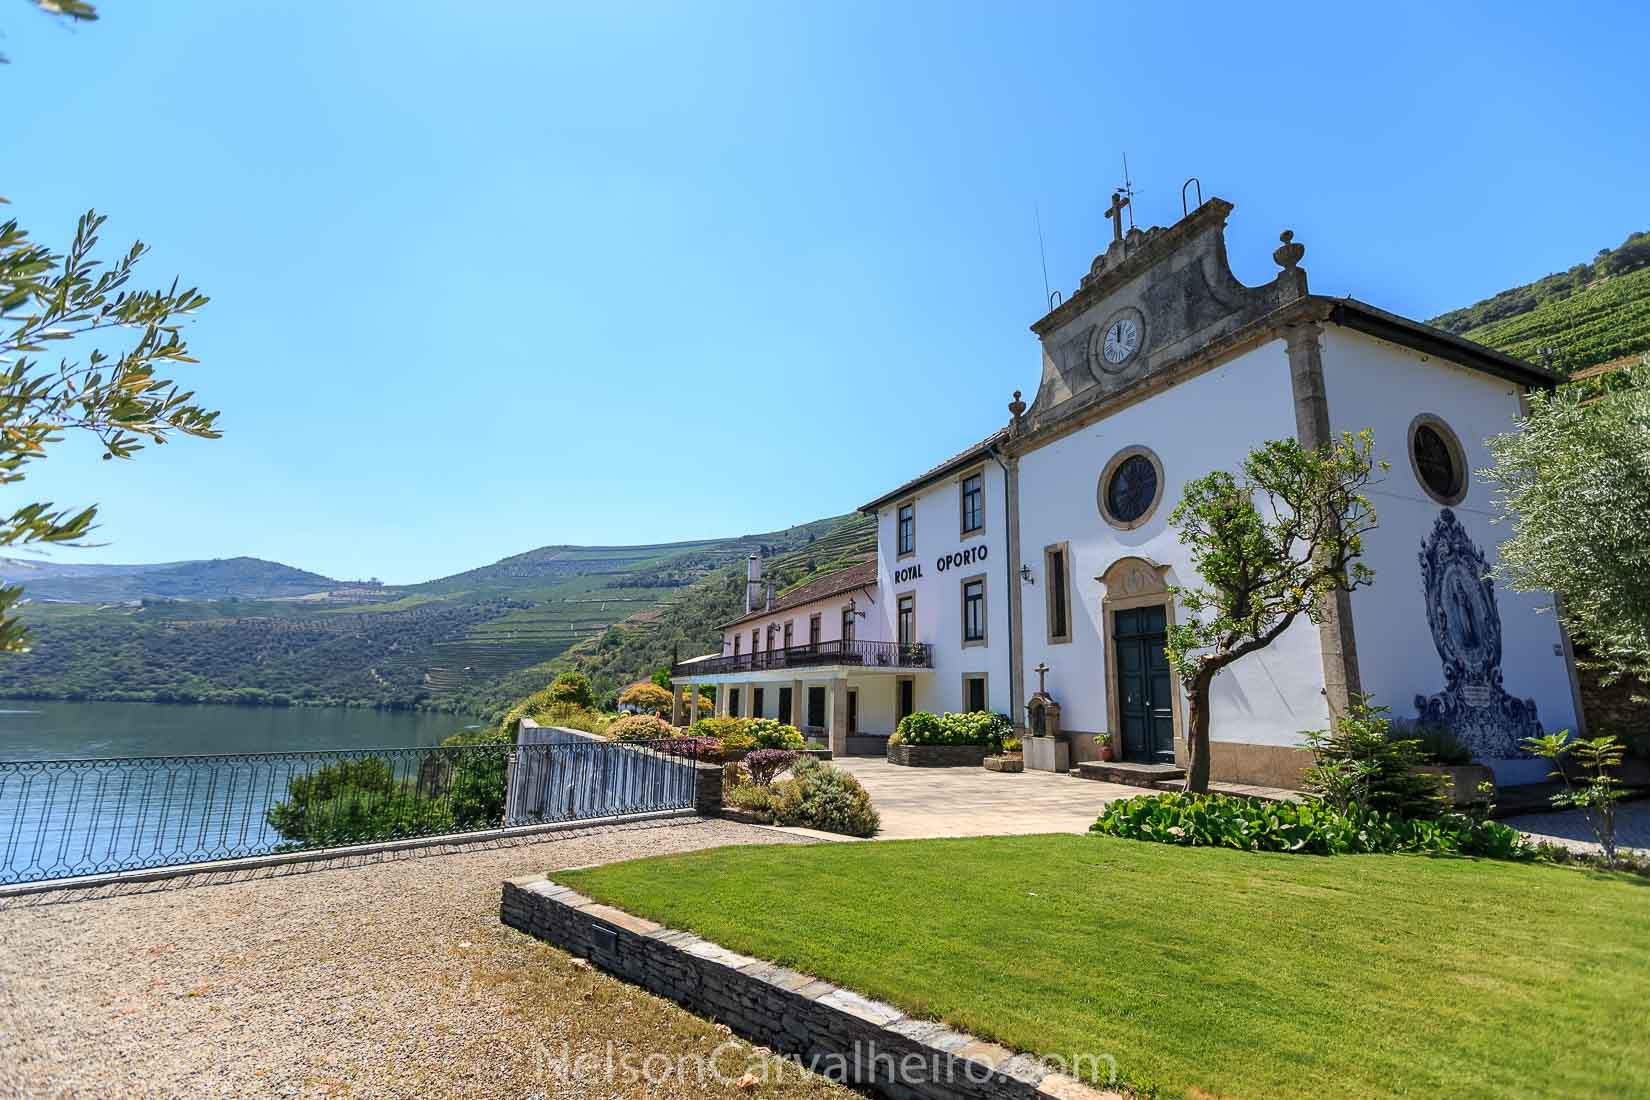 Douro Quinta das Carvalhas | Photo by: Nelson Carvalheiro